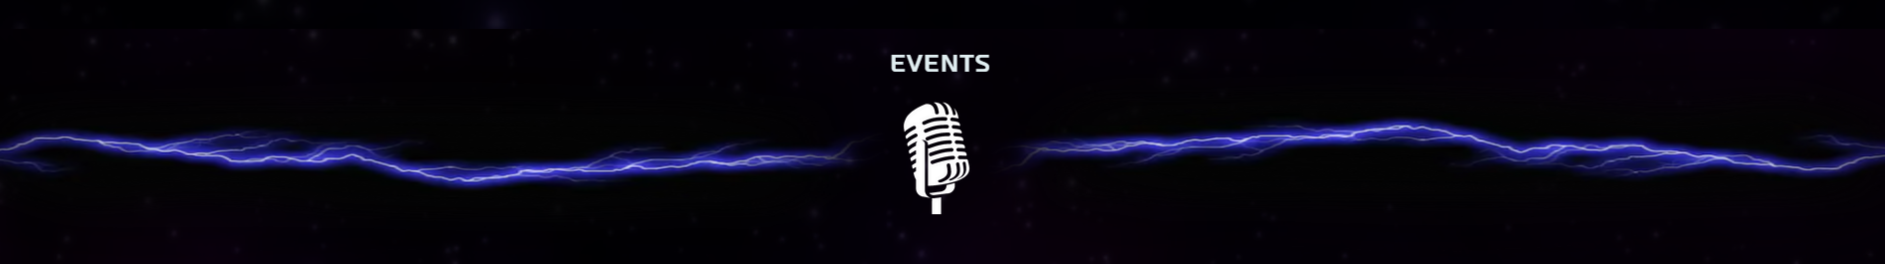 EVENTS BOARDER LINE.png